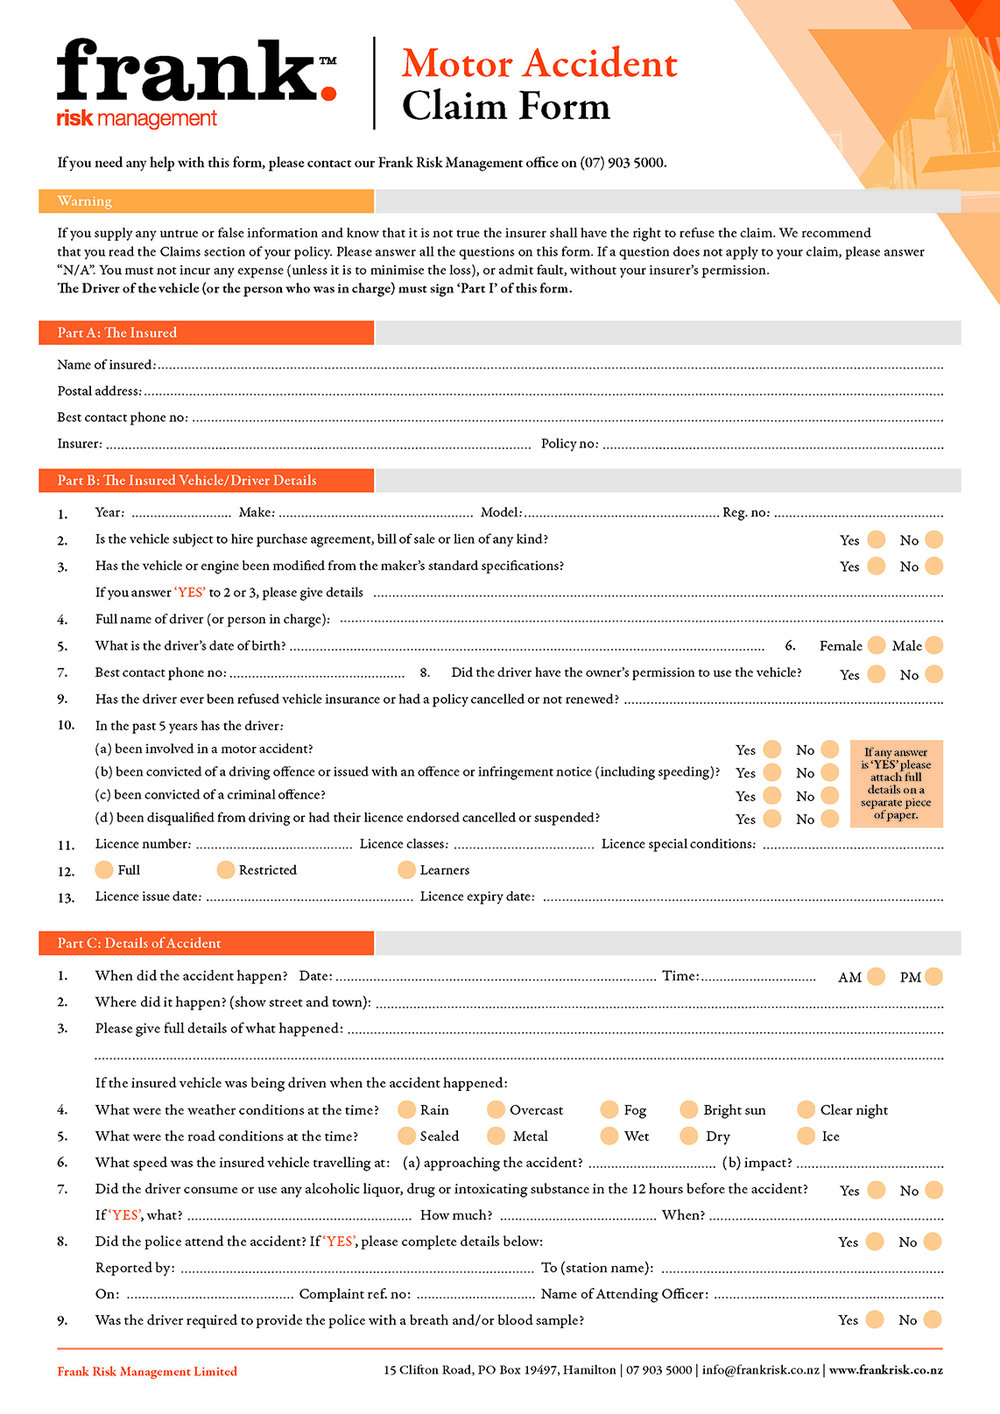 Motor Accident Claim Form_Page_1